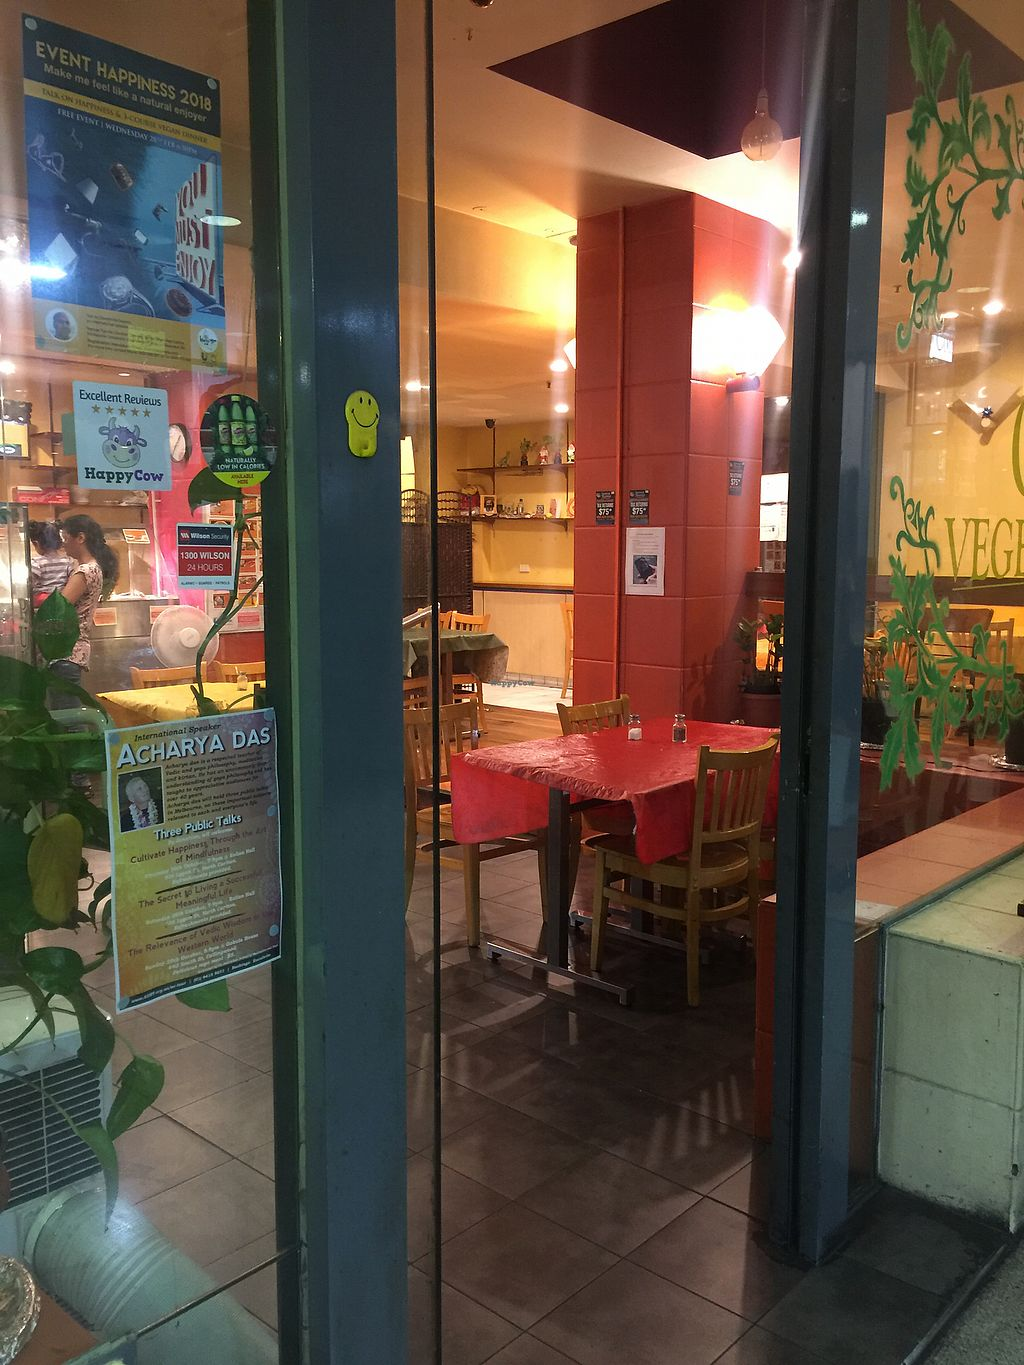 """Photo of Om Vegetarian - Capitol Arcade  by <a href=""""/members/profile/Tiggy"""">Tiggy</a> <br/>Entrance (with Happy Cow sticker on window) <br/> March 3, 2018  - <a href='/contact/abuse/image/50591/366078'>Report</a>"""